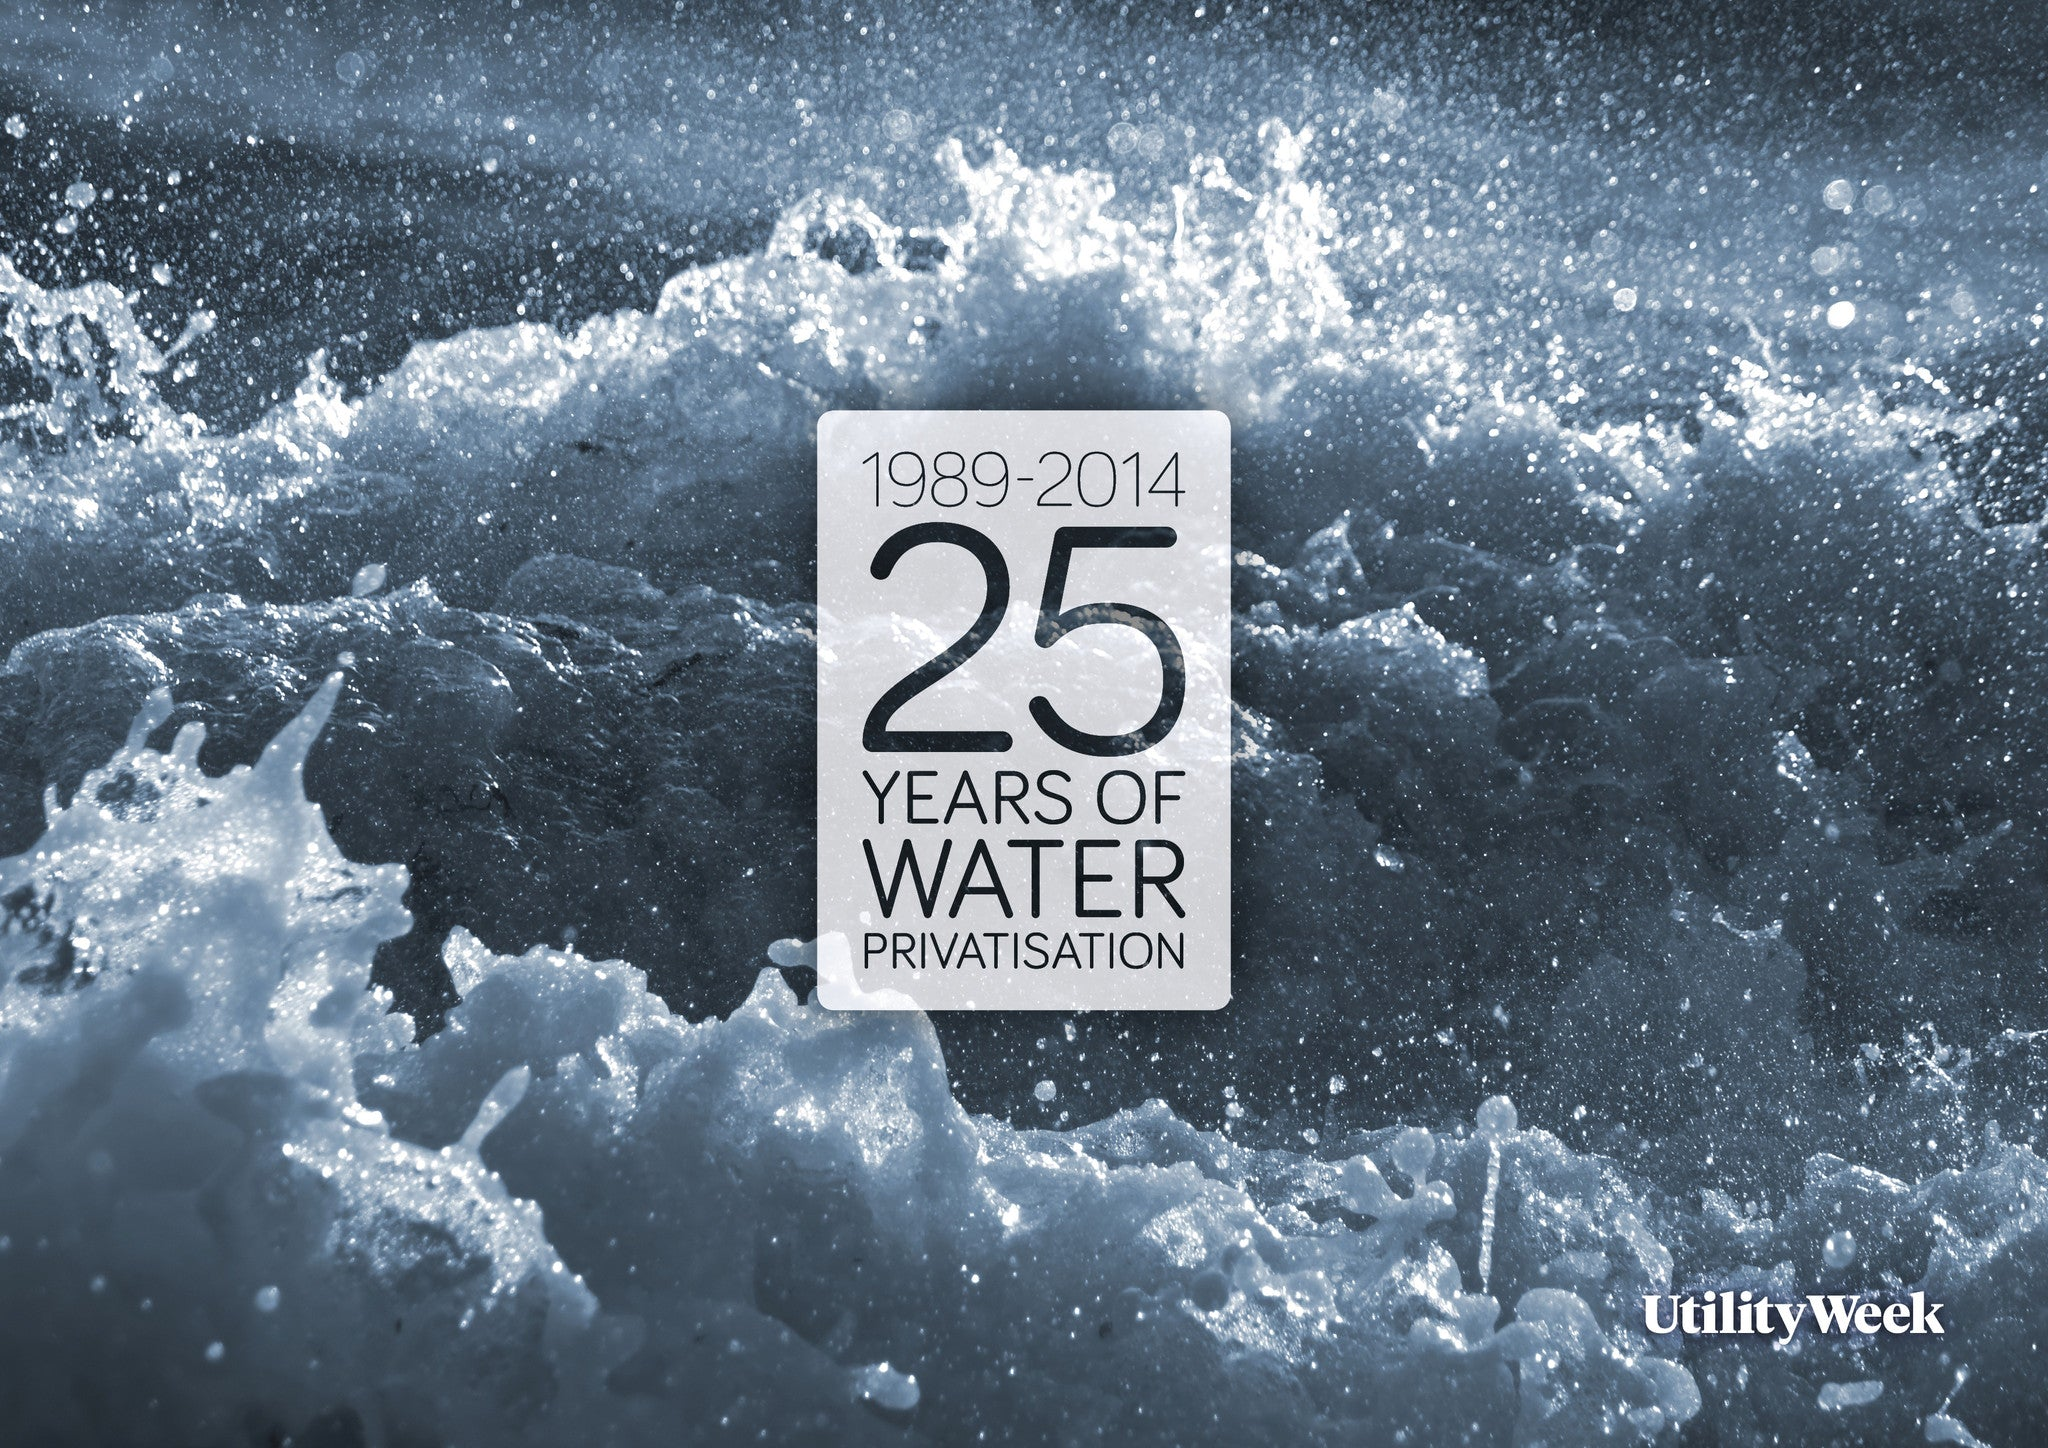 25 Years of Water Privatisation